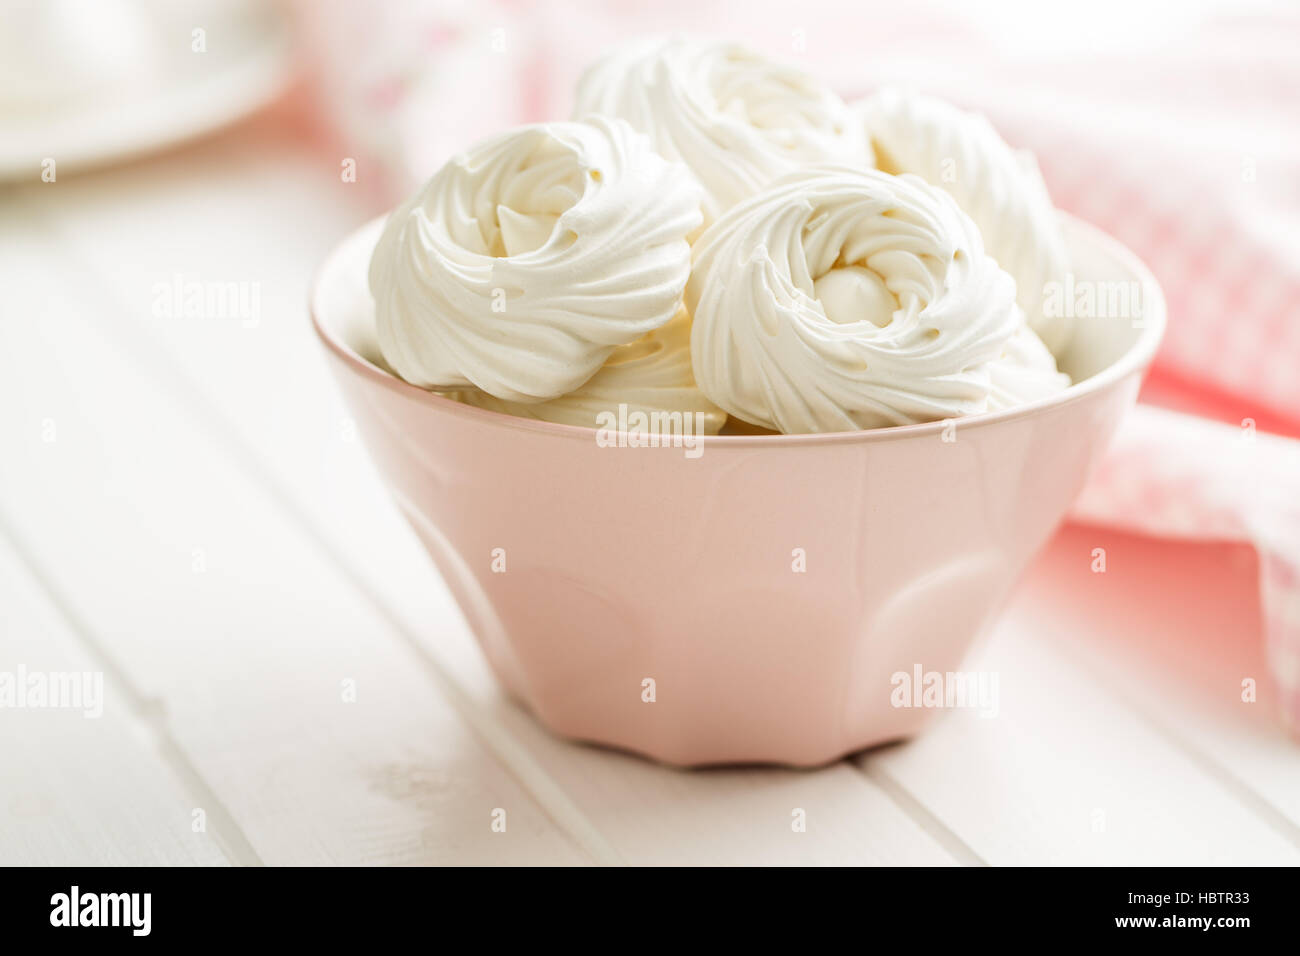 Sweet white meringue in bowl. - Stock Image